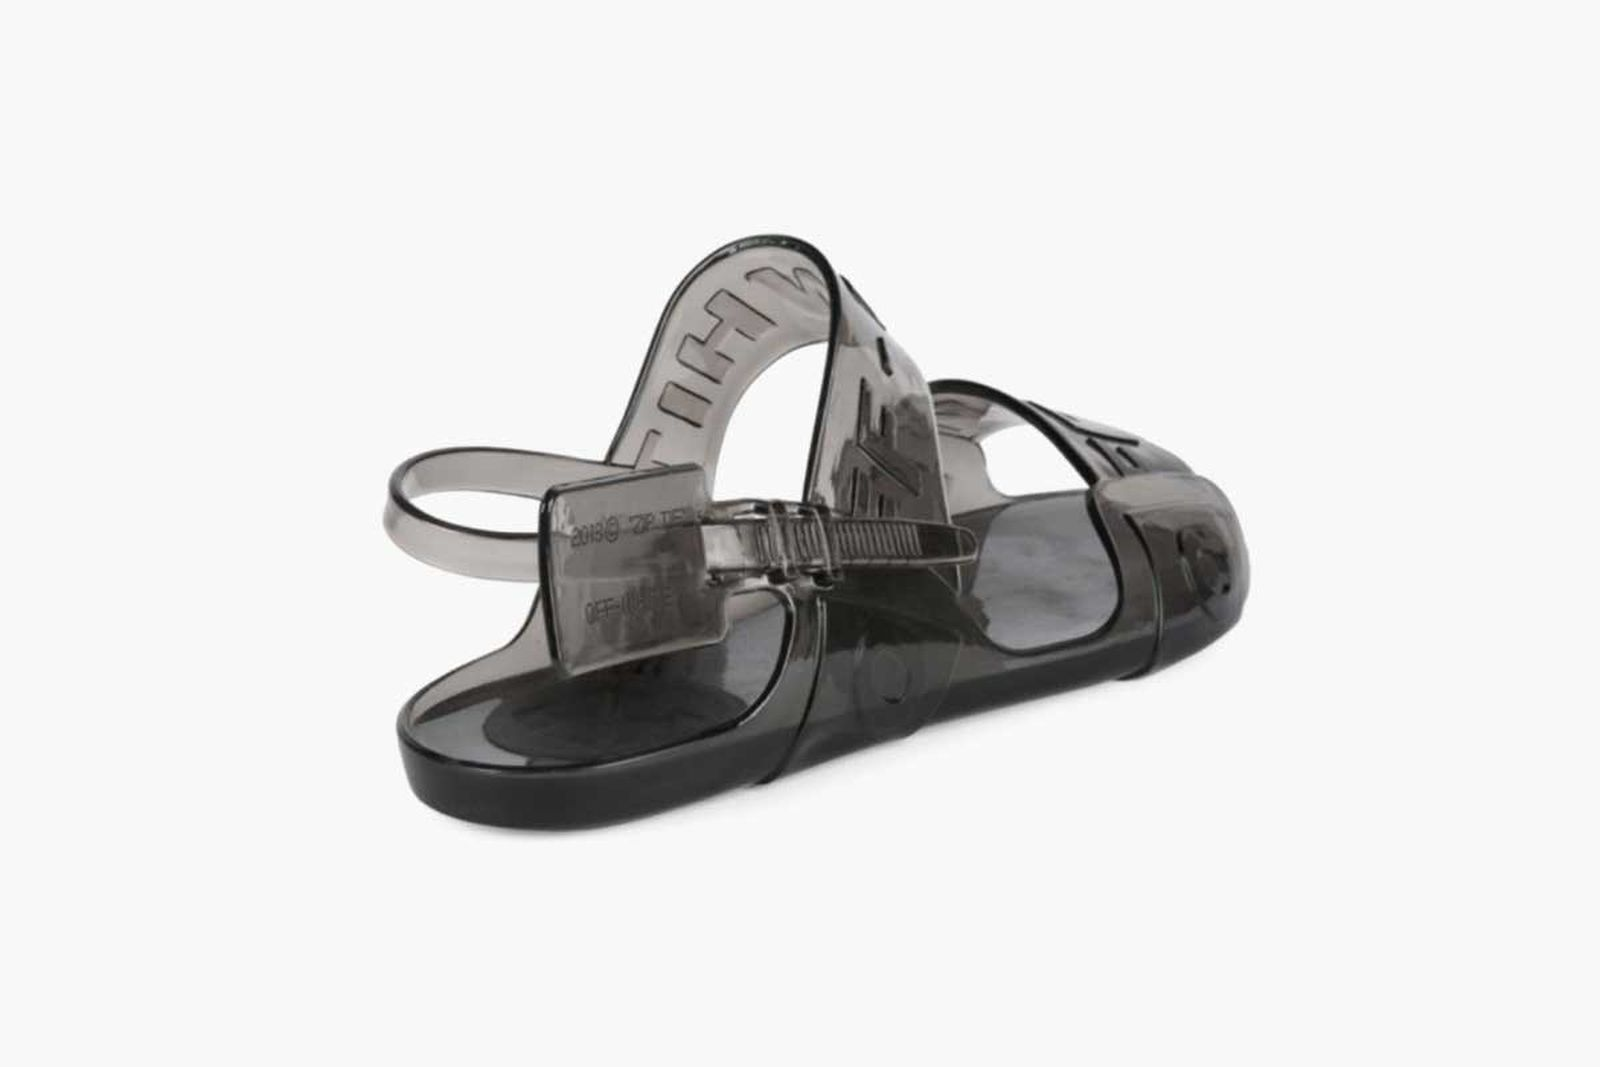 off white zip tie sandals release date price OFF-WHITE c/o Virgil Abloh